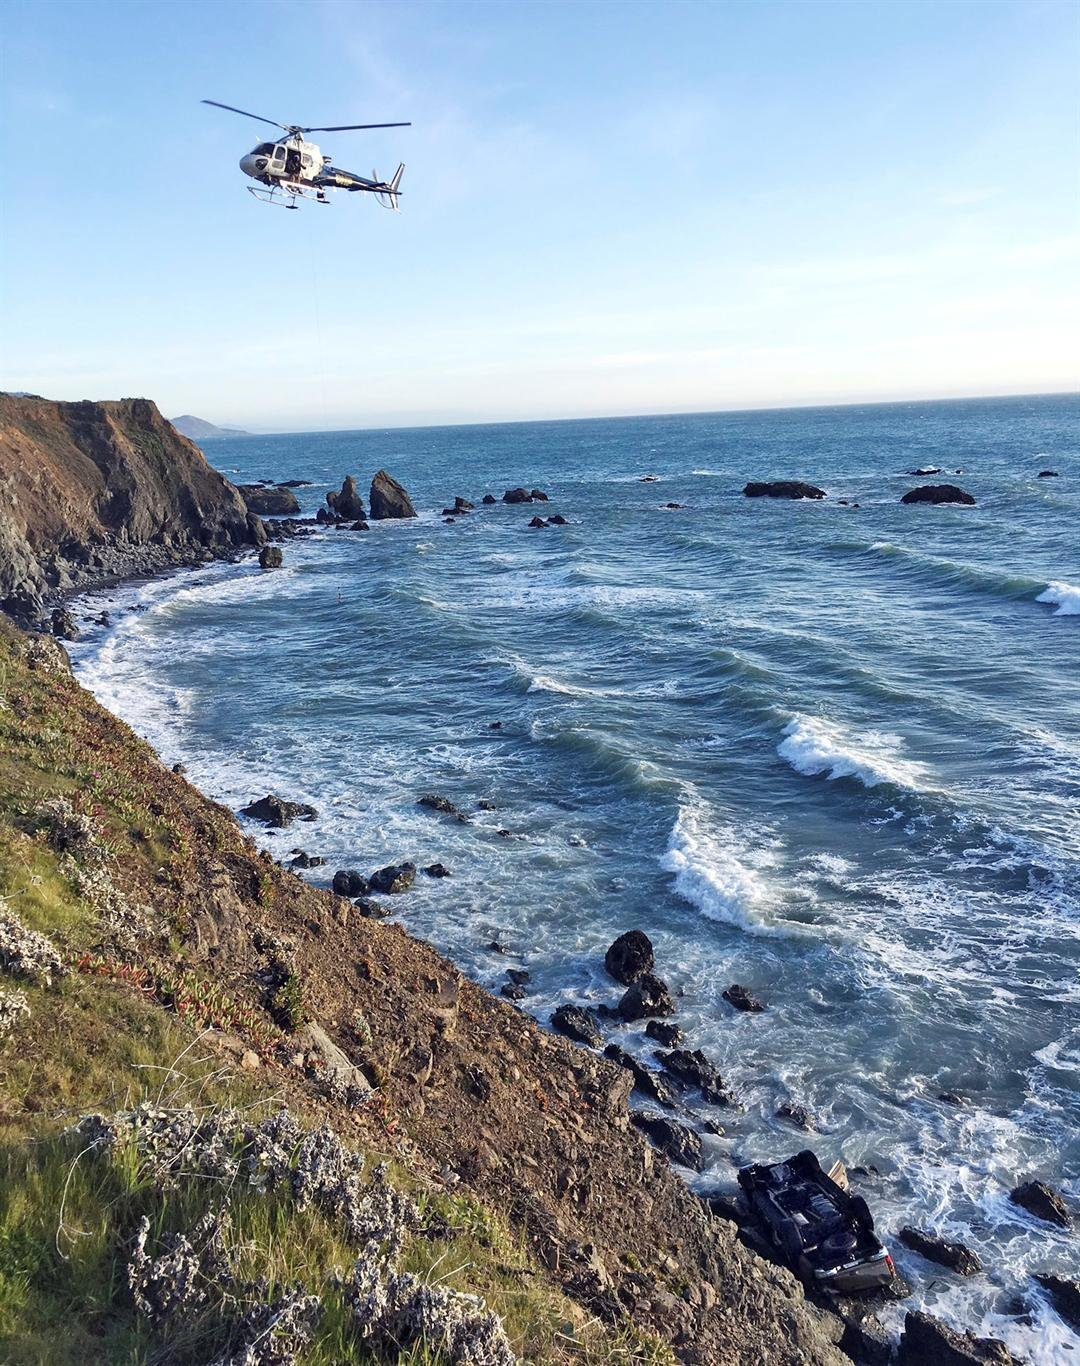 A helicopter hovering over steep coastal cliffs near Mendocino, Calif., where a vehicle, visible at lower right, plunged about 100 feet off a cliff along Highway 1, killing all five passengers. (California Highway Patrol via AP)